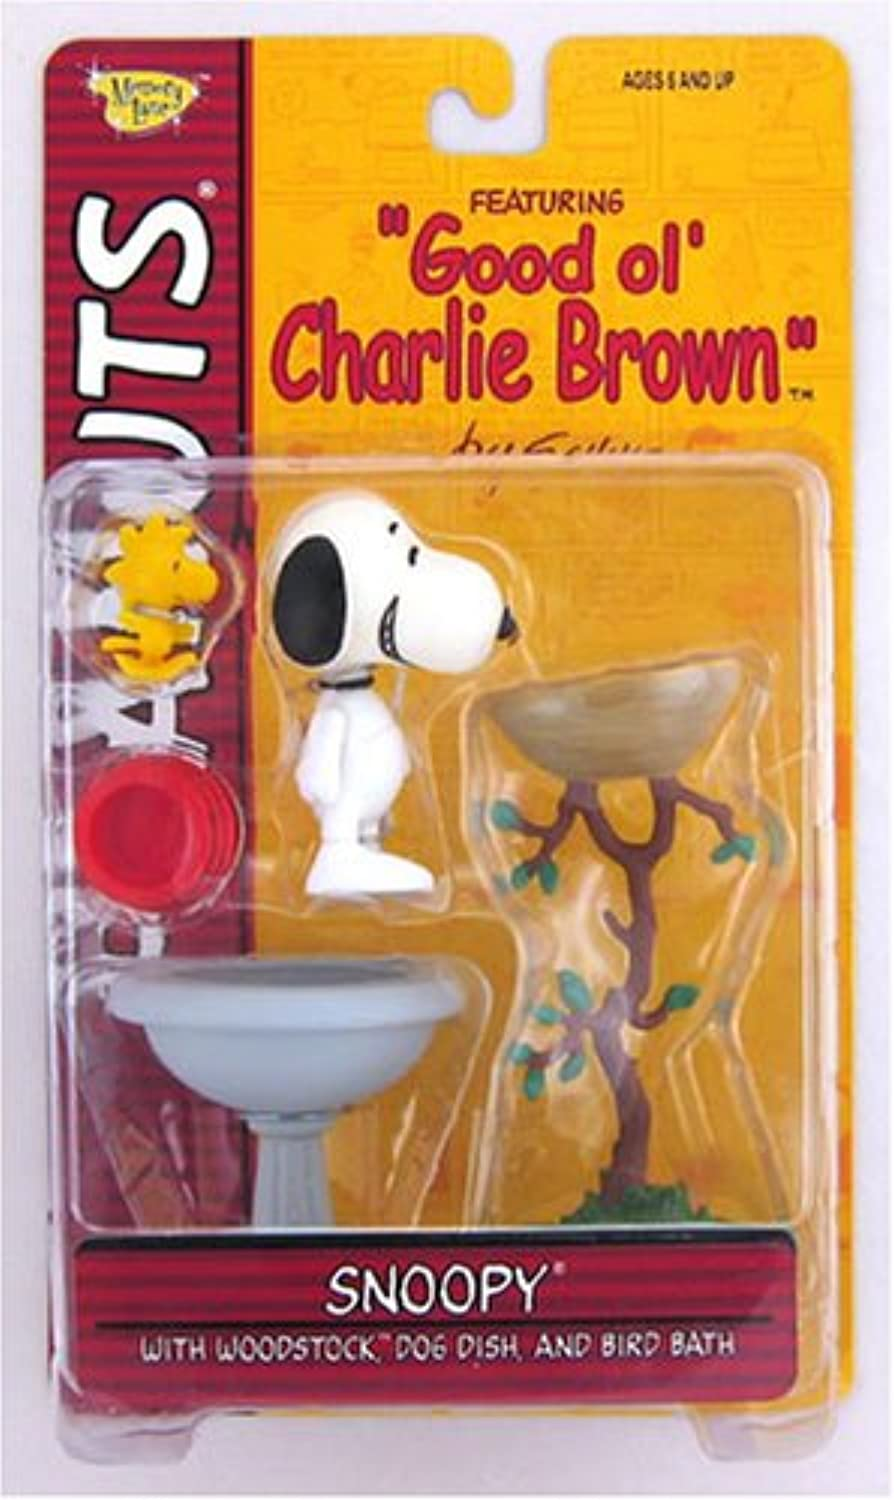 SNOOPY & WOODSTOCK  CLASSIC SMILE EXPRESSION  with Dog Dish & Bird Bath PEANUTS Action Figure from Good ol' CHARLIE BROWN